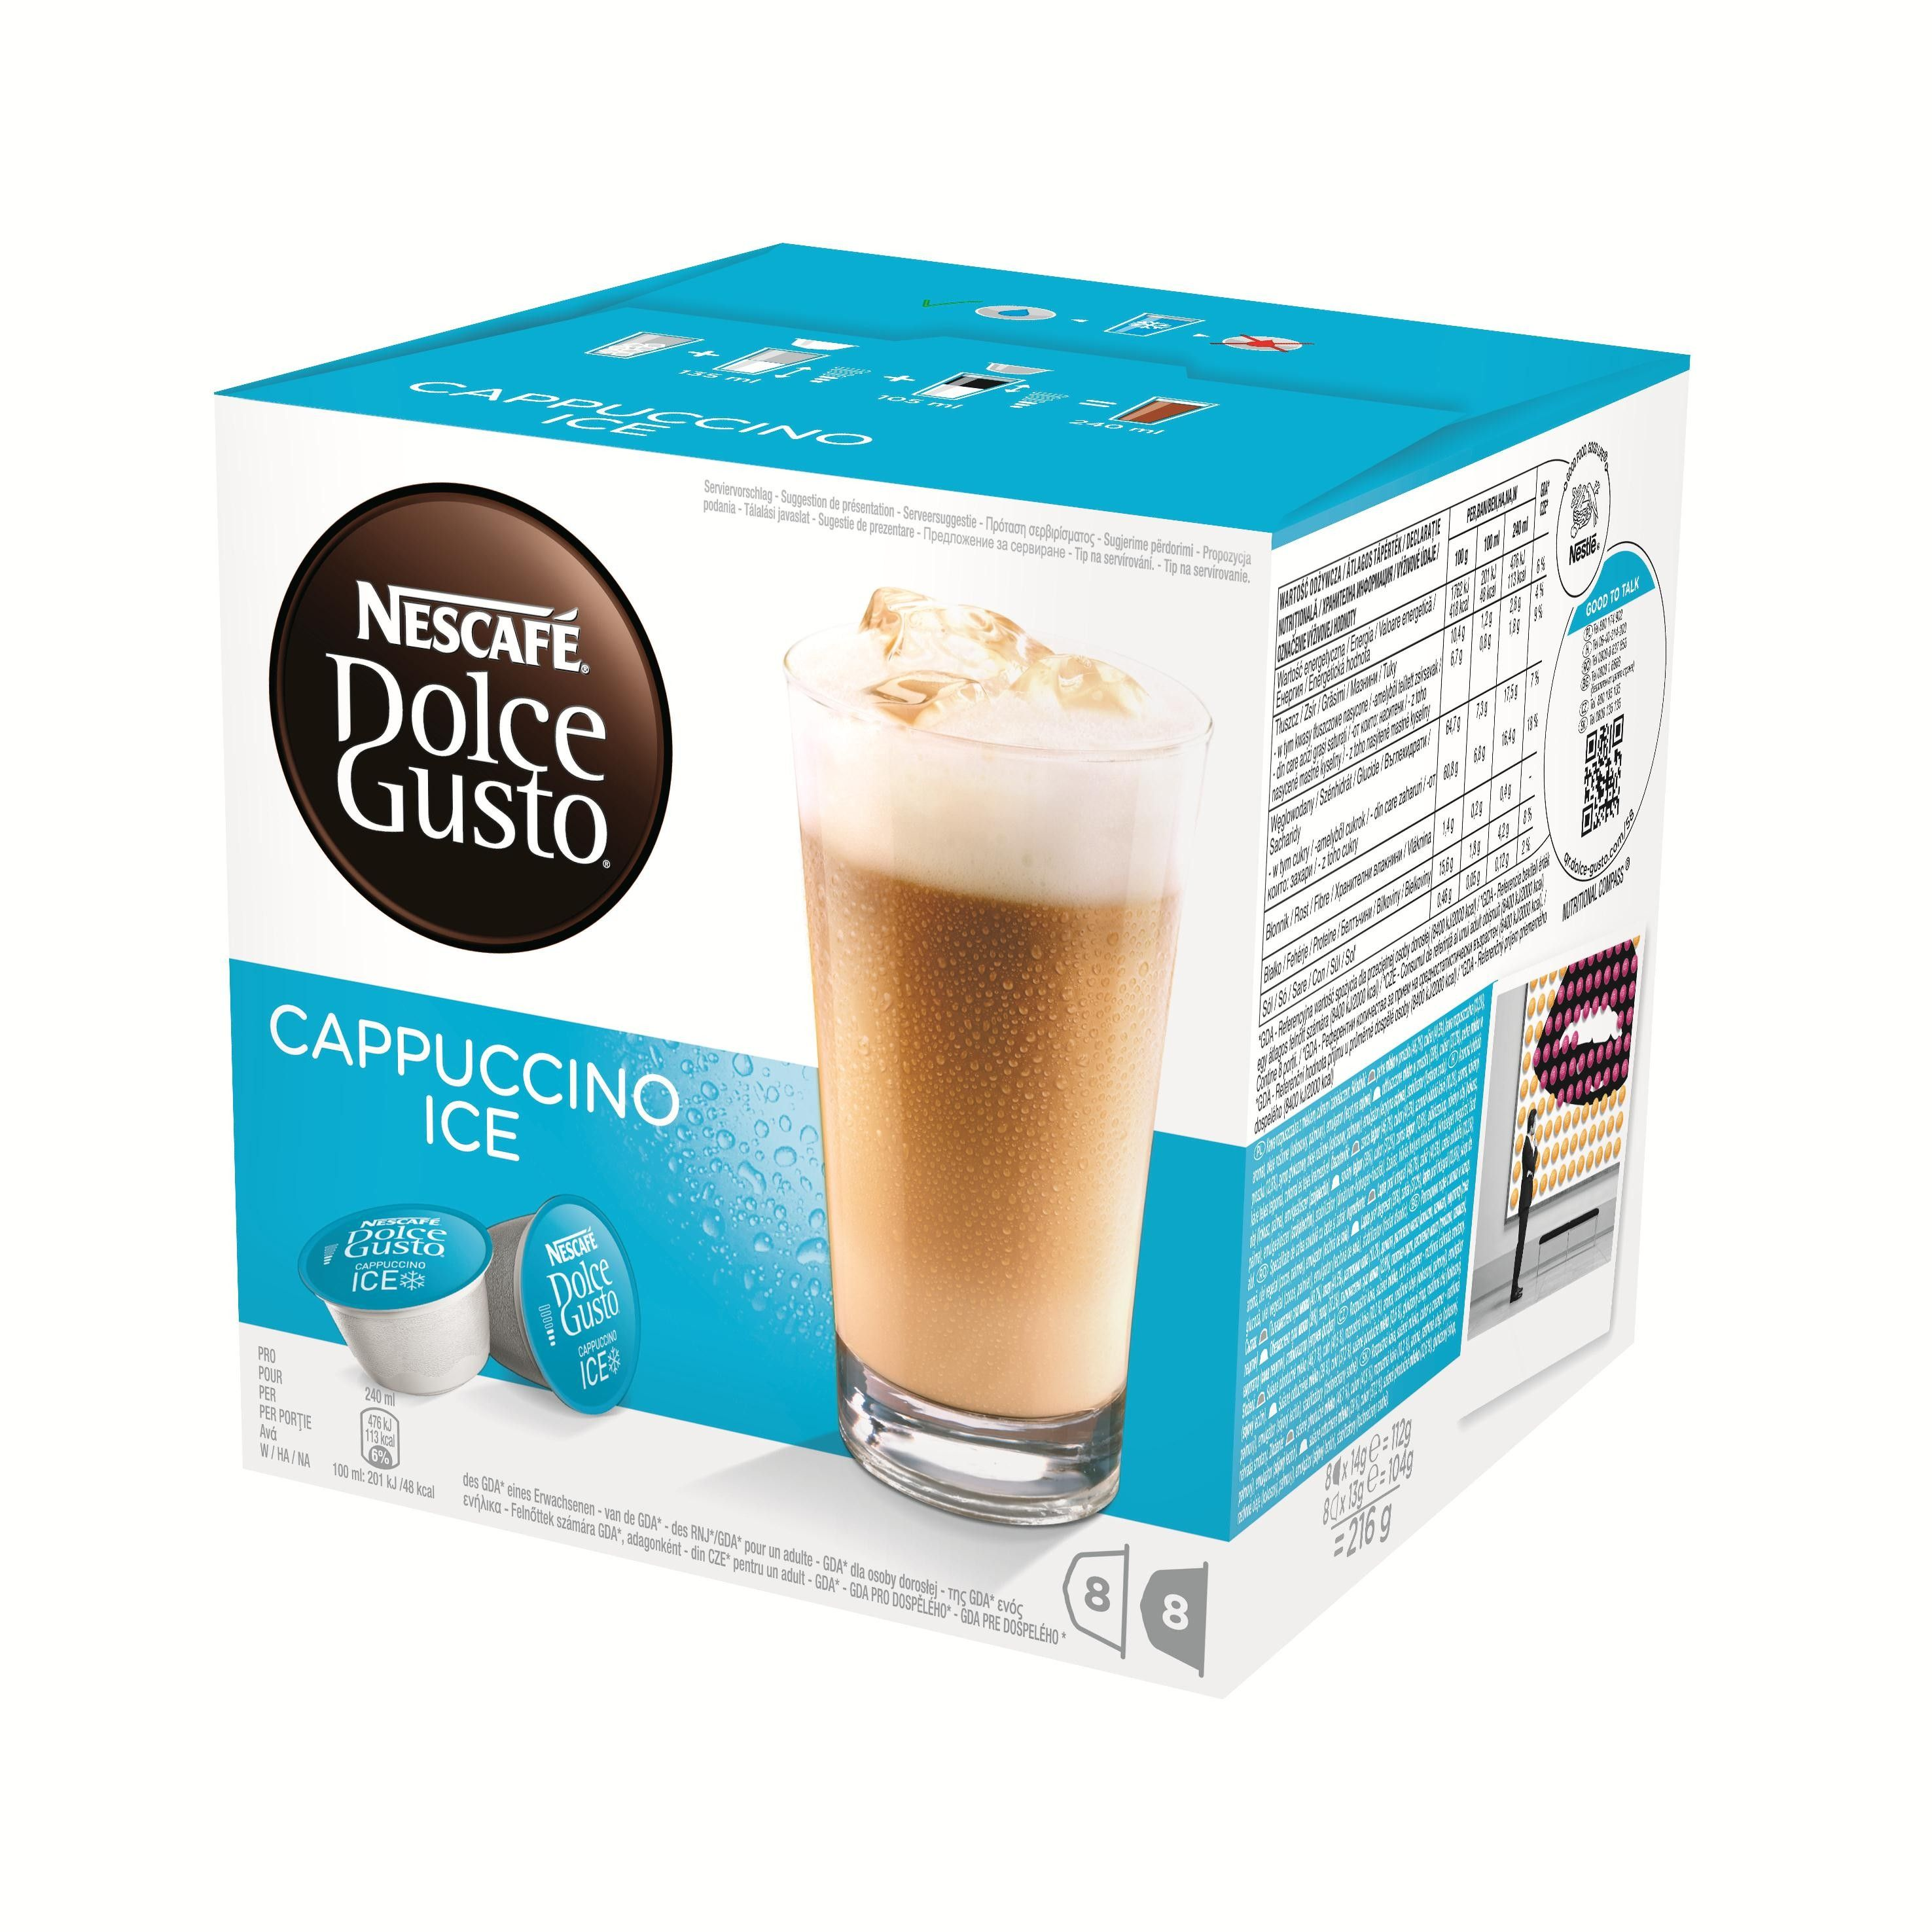 Nescafe Dolce Gusto Cappuccino Ice Ijscappuccino Dolce Gusto En